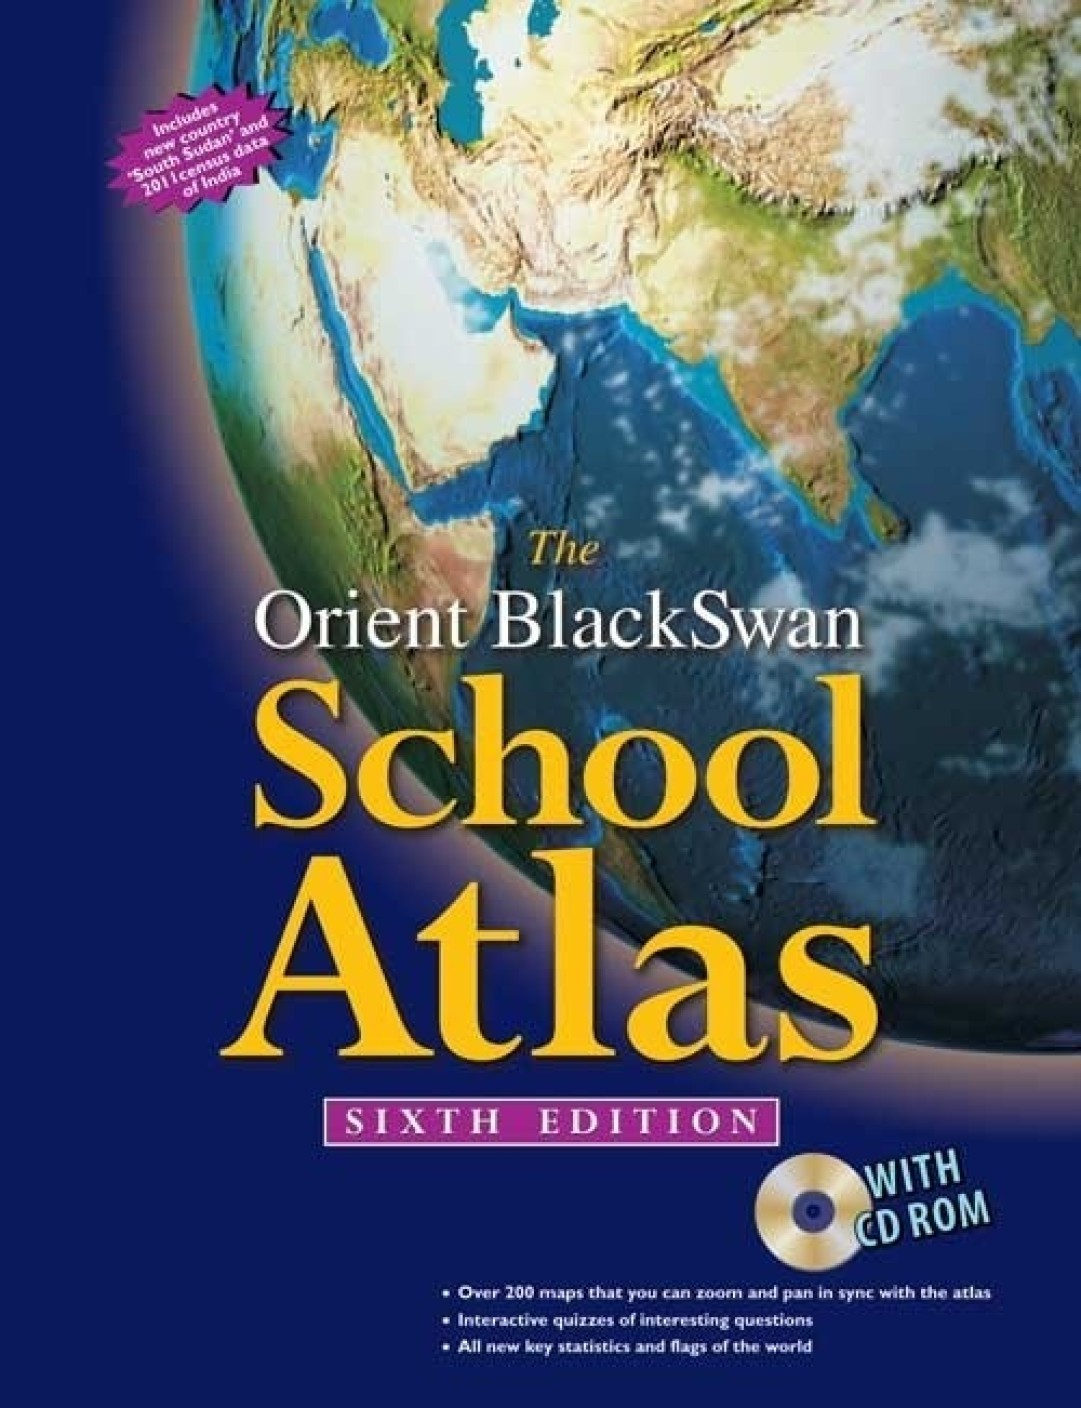 The orient blackswan school atlas with cd rom 6th edition buy add to cart gumiabroncs Choice Image